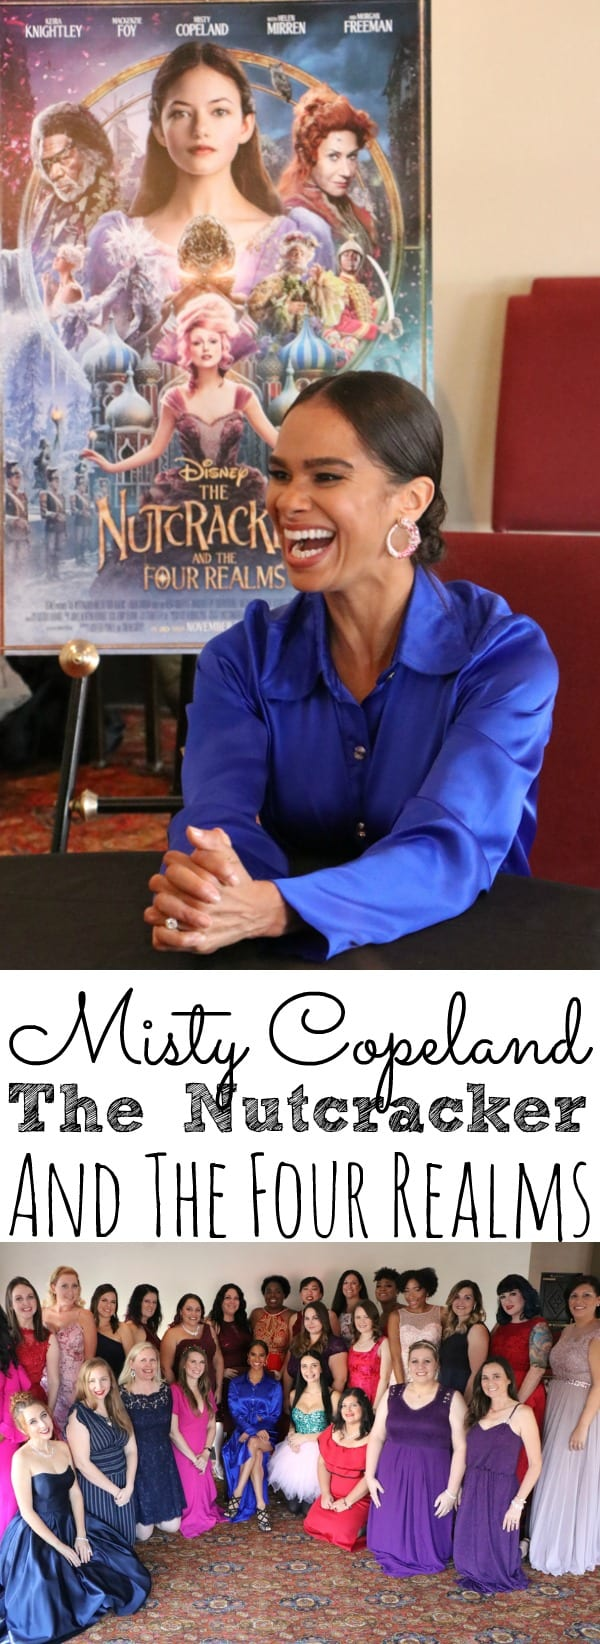 Interview with Misty Copeland The Nutcracker and the Four Realms